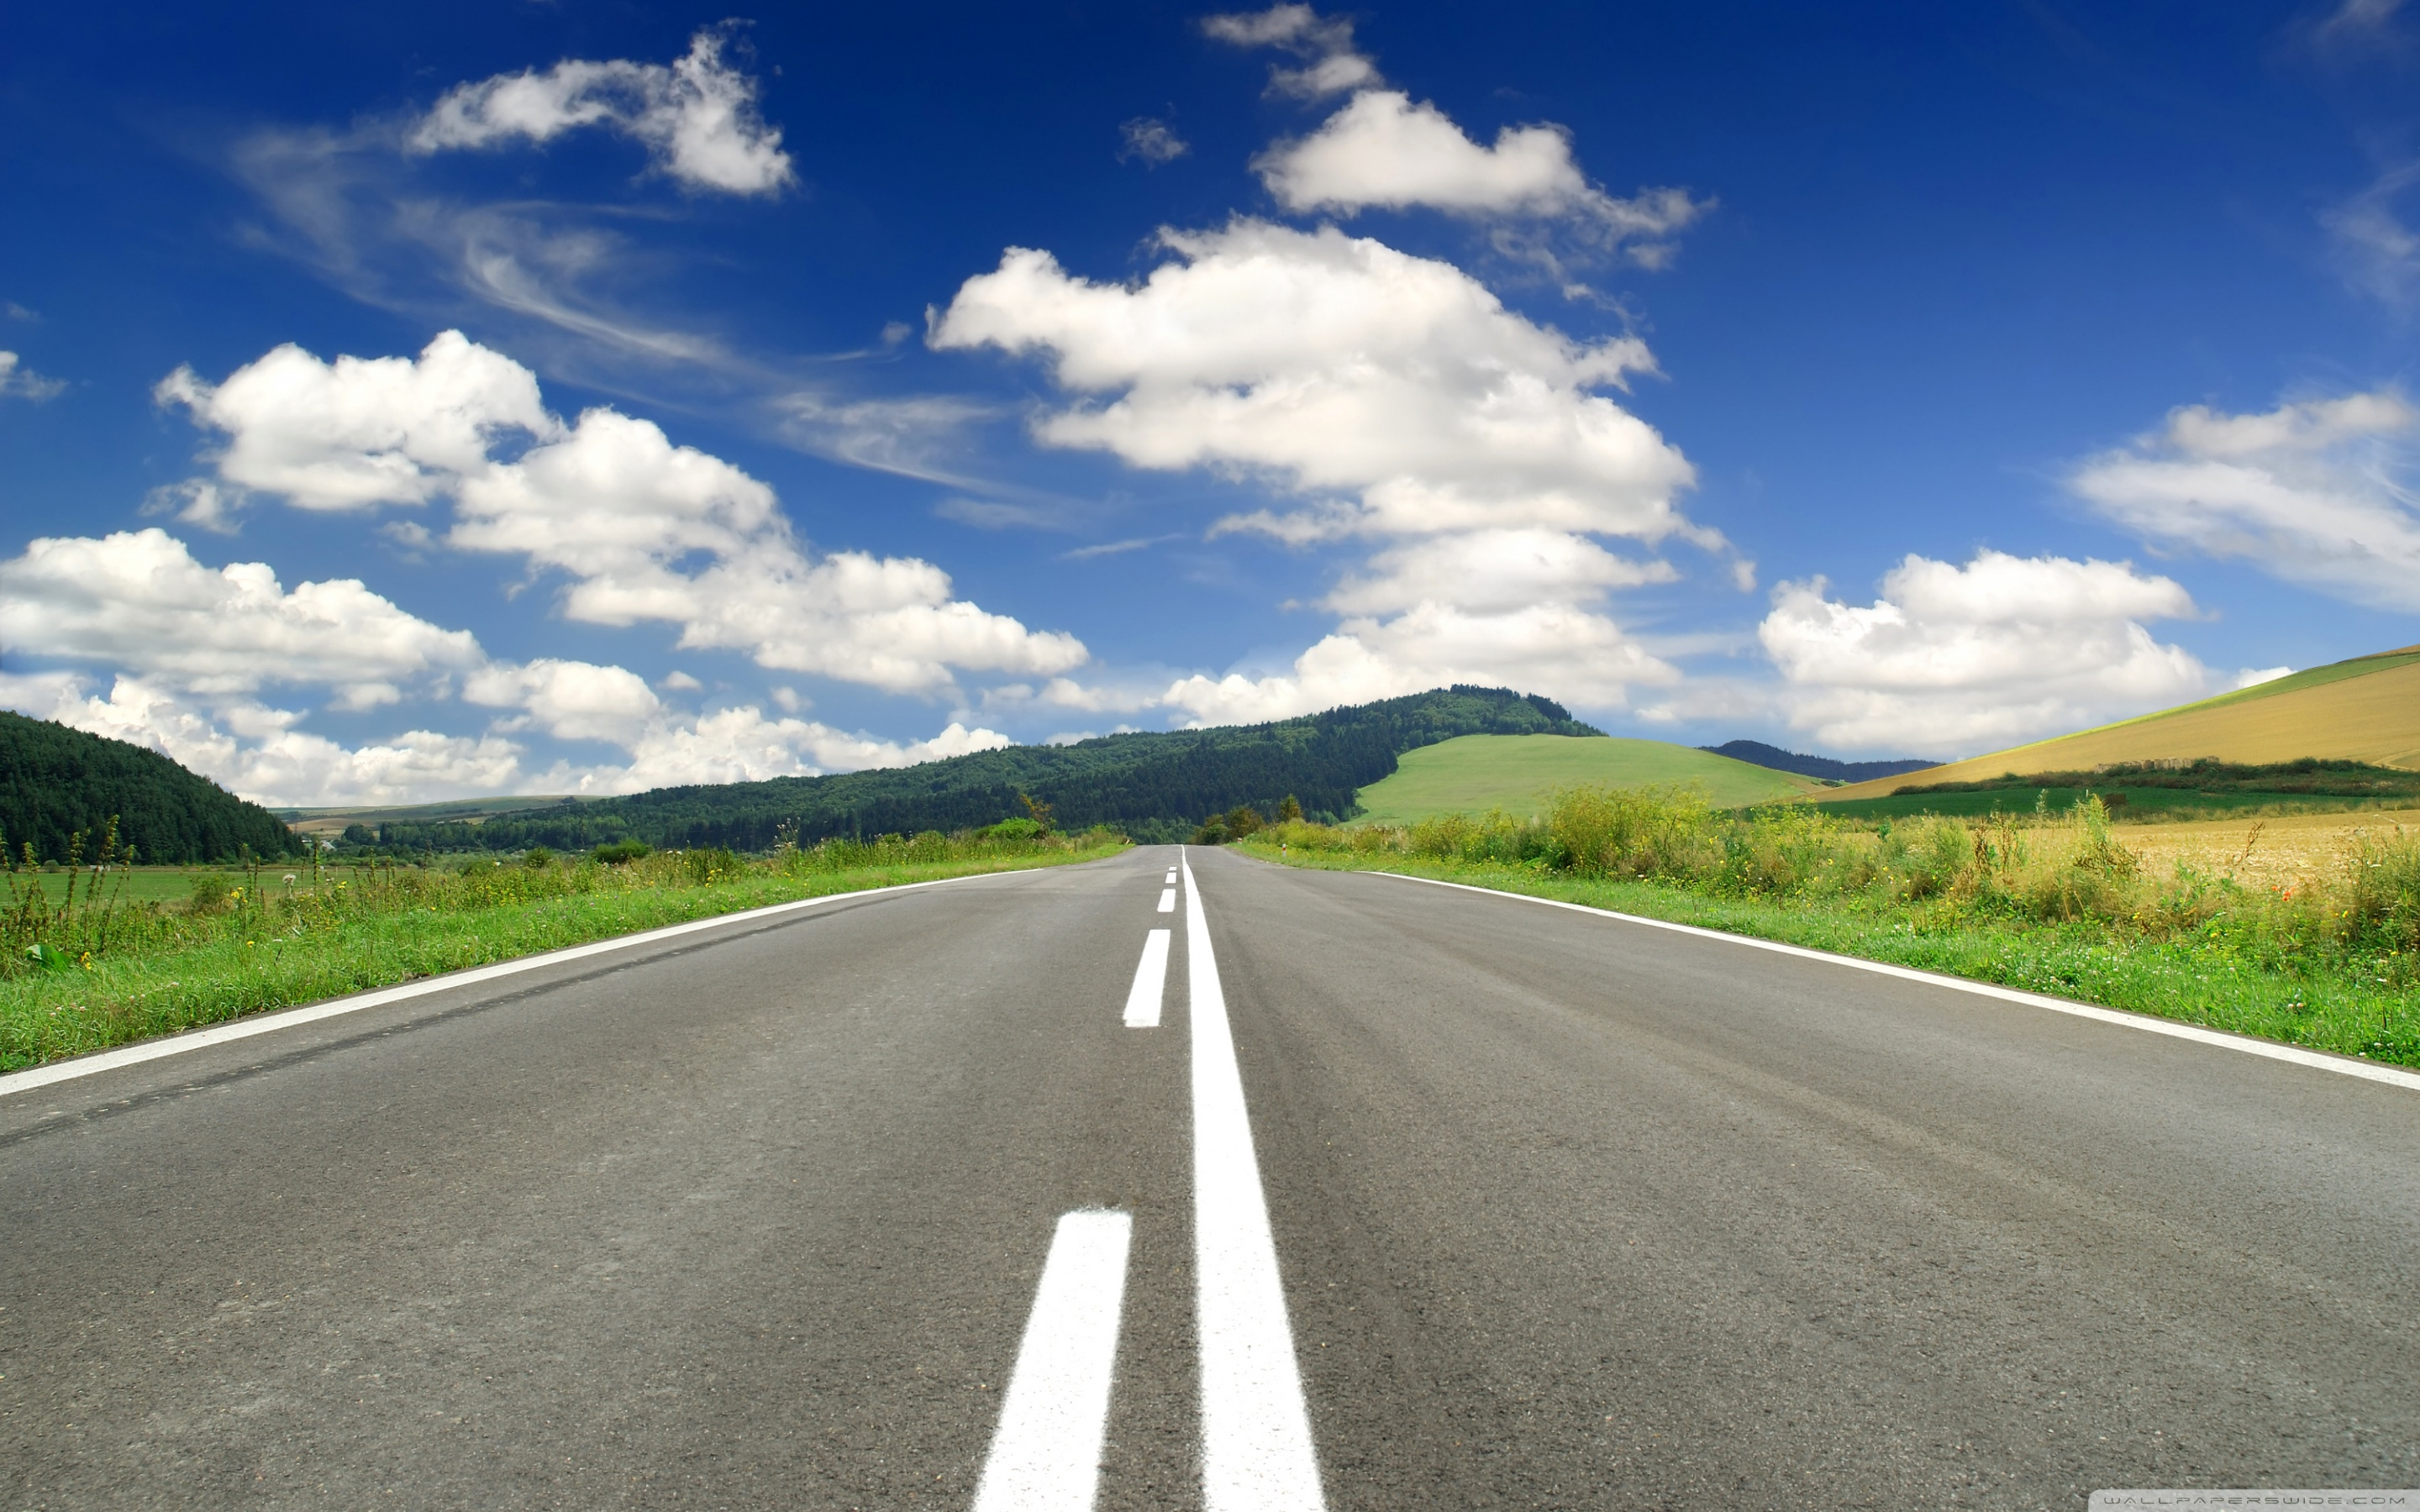 Clipart Winding Road Wallpapers Phone : Other Wallpaper.